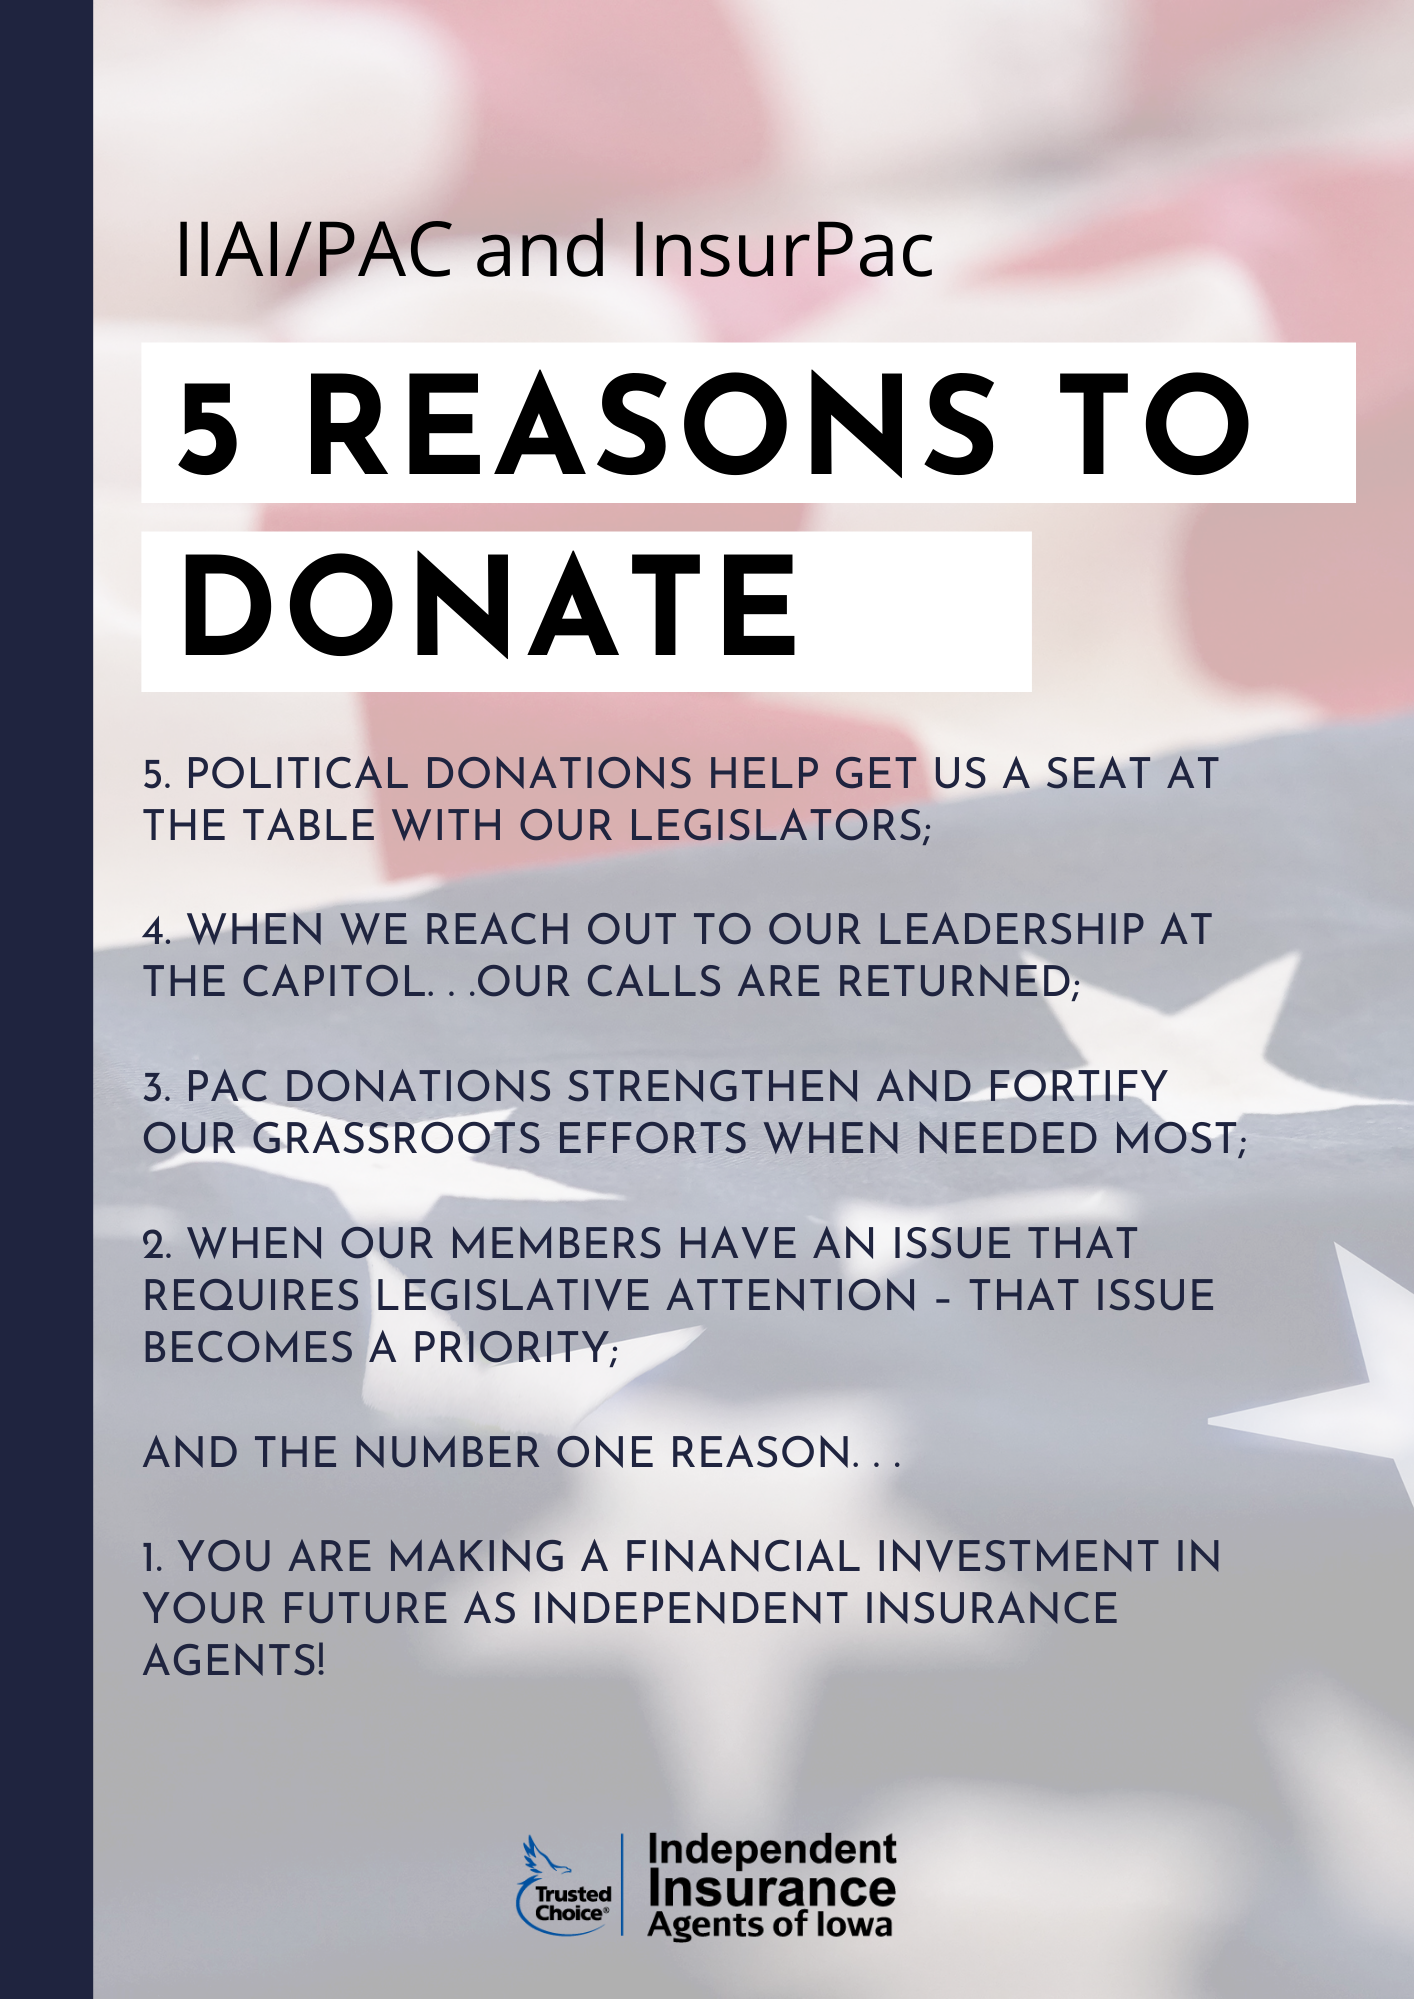 5 reason to donate to PAC - image.png